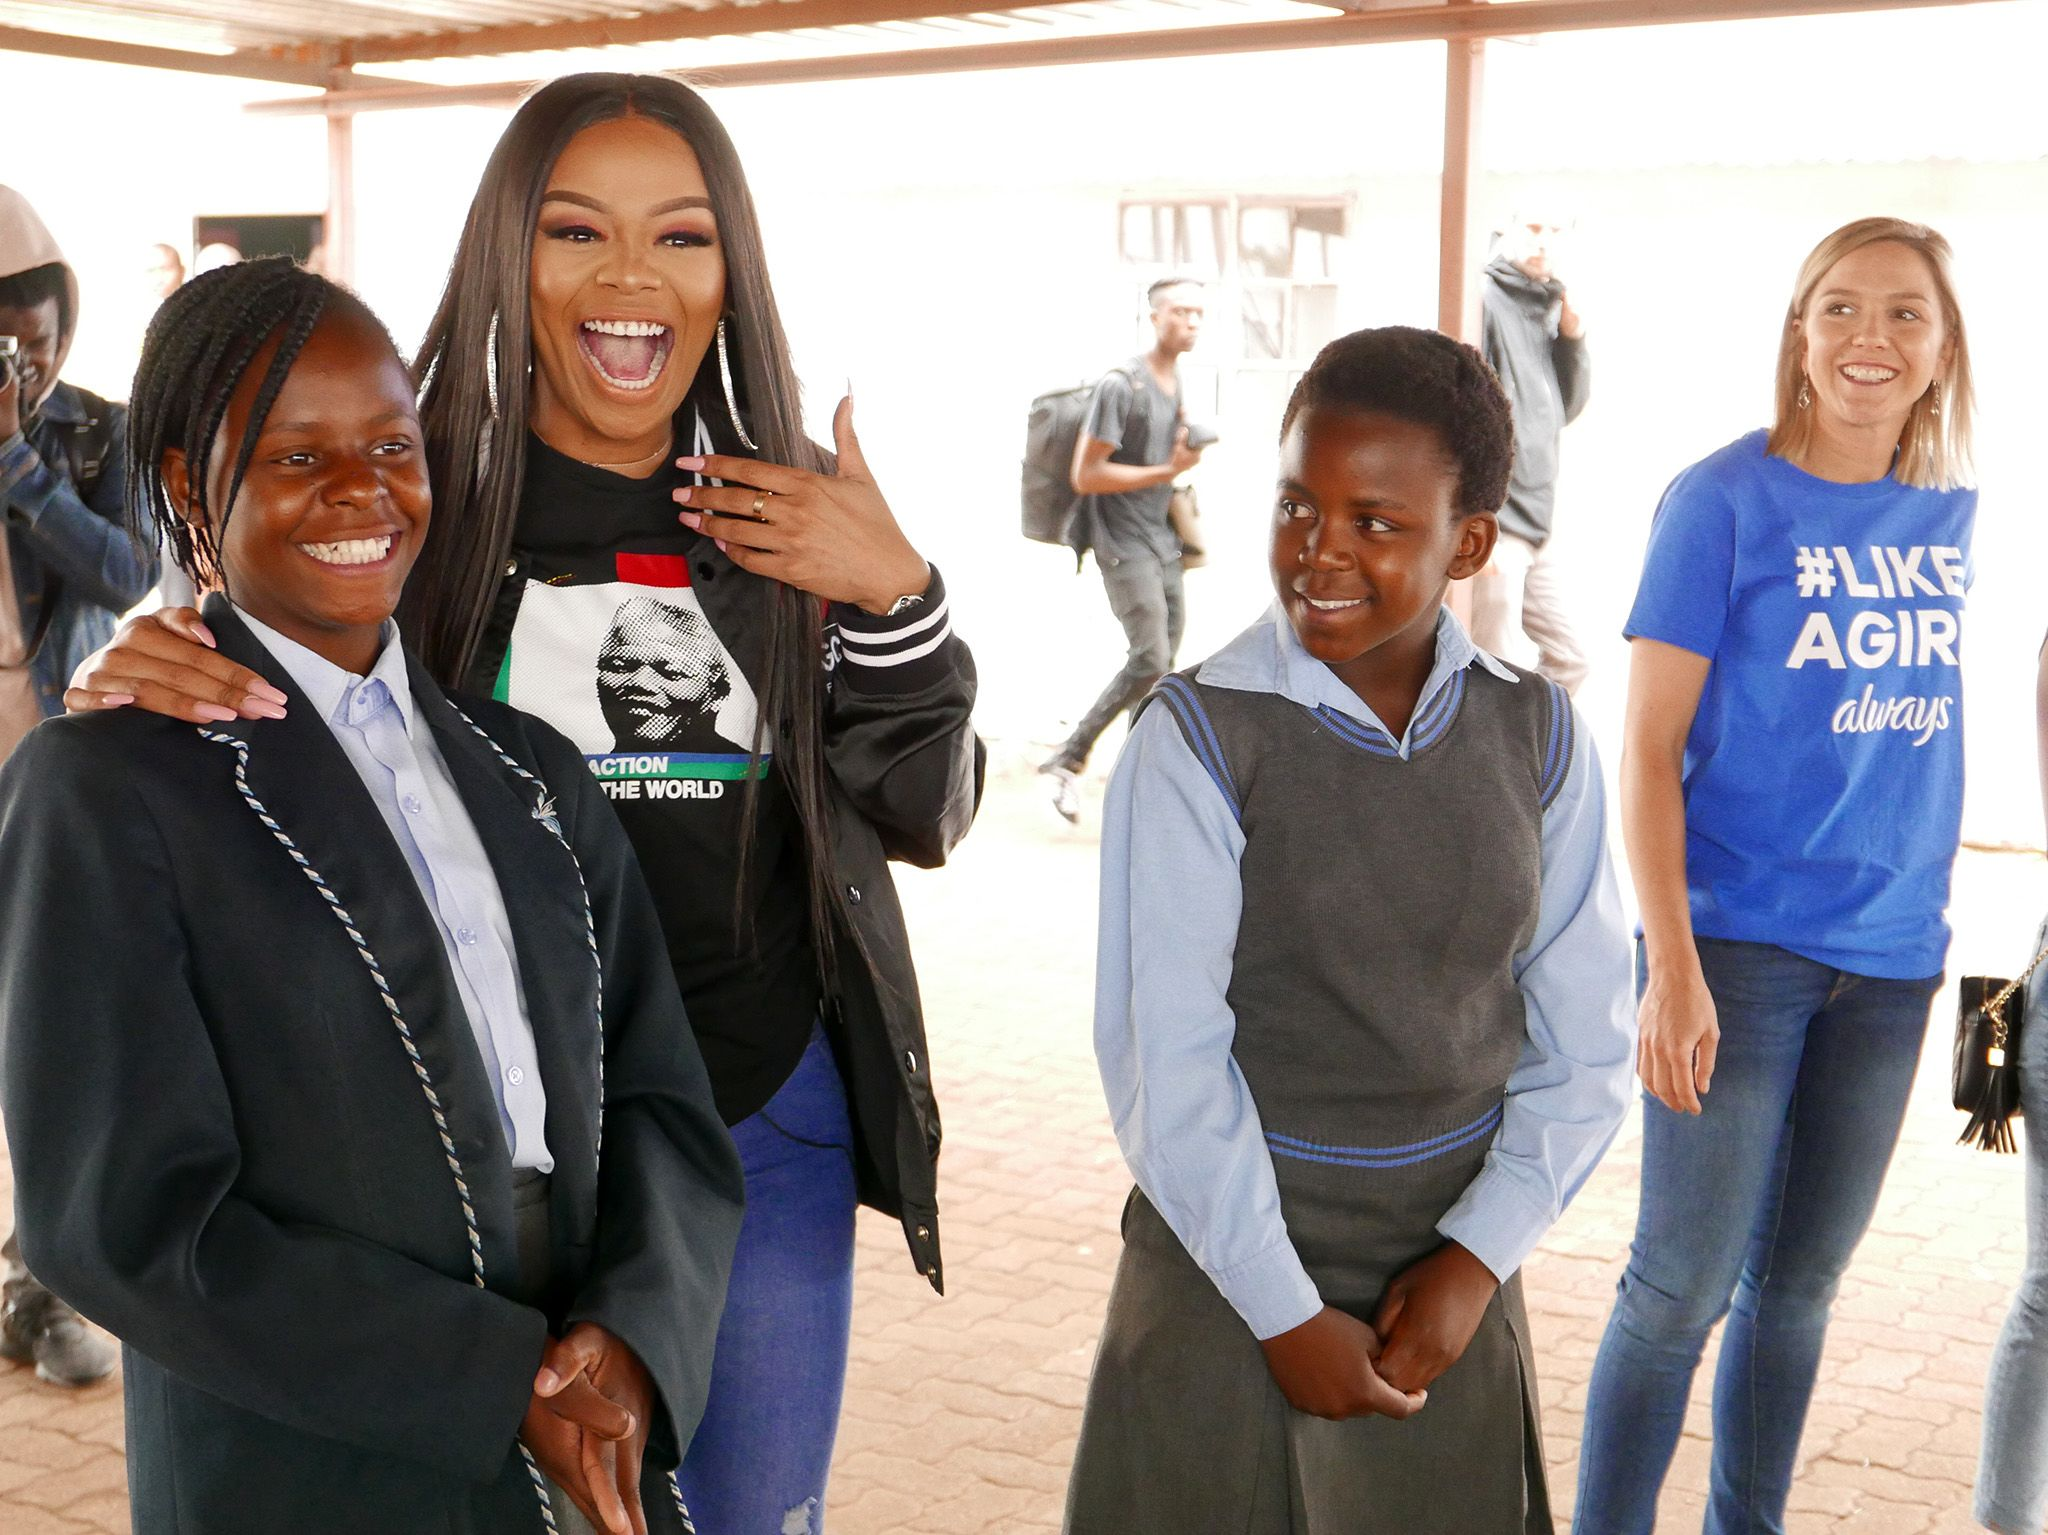 Bonang Matheba jokes with students at Thabotona Primary Farm School. This image is from... [Photo of the day - سپتامبر 2019]